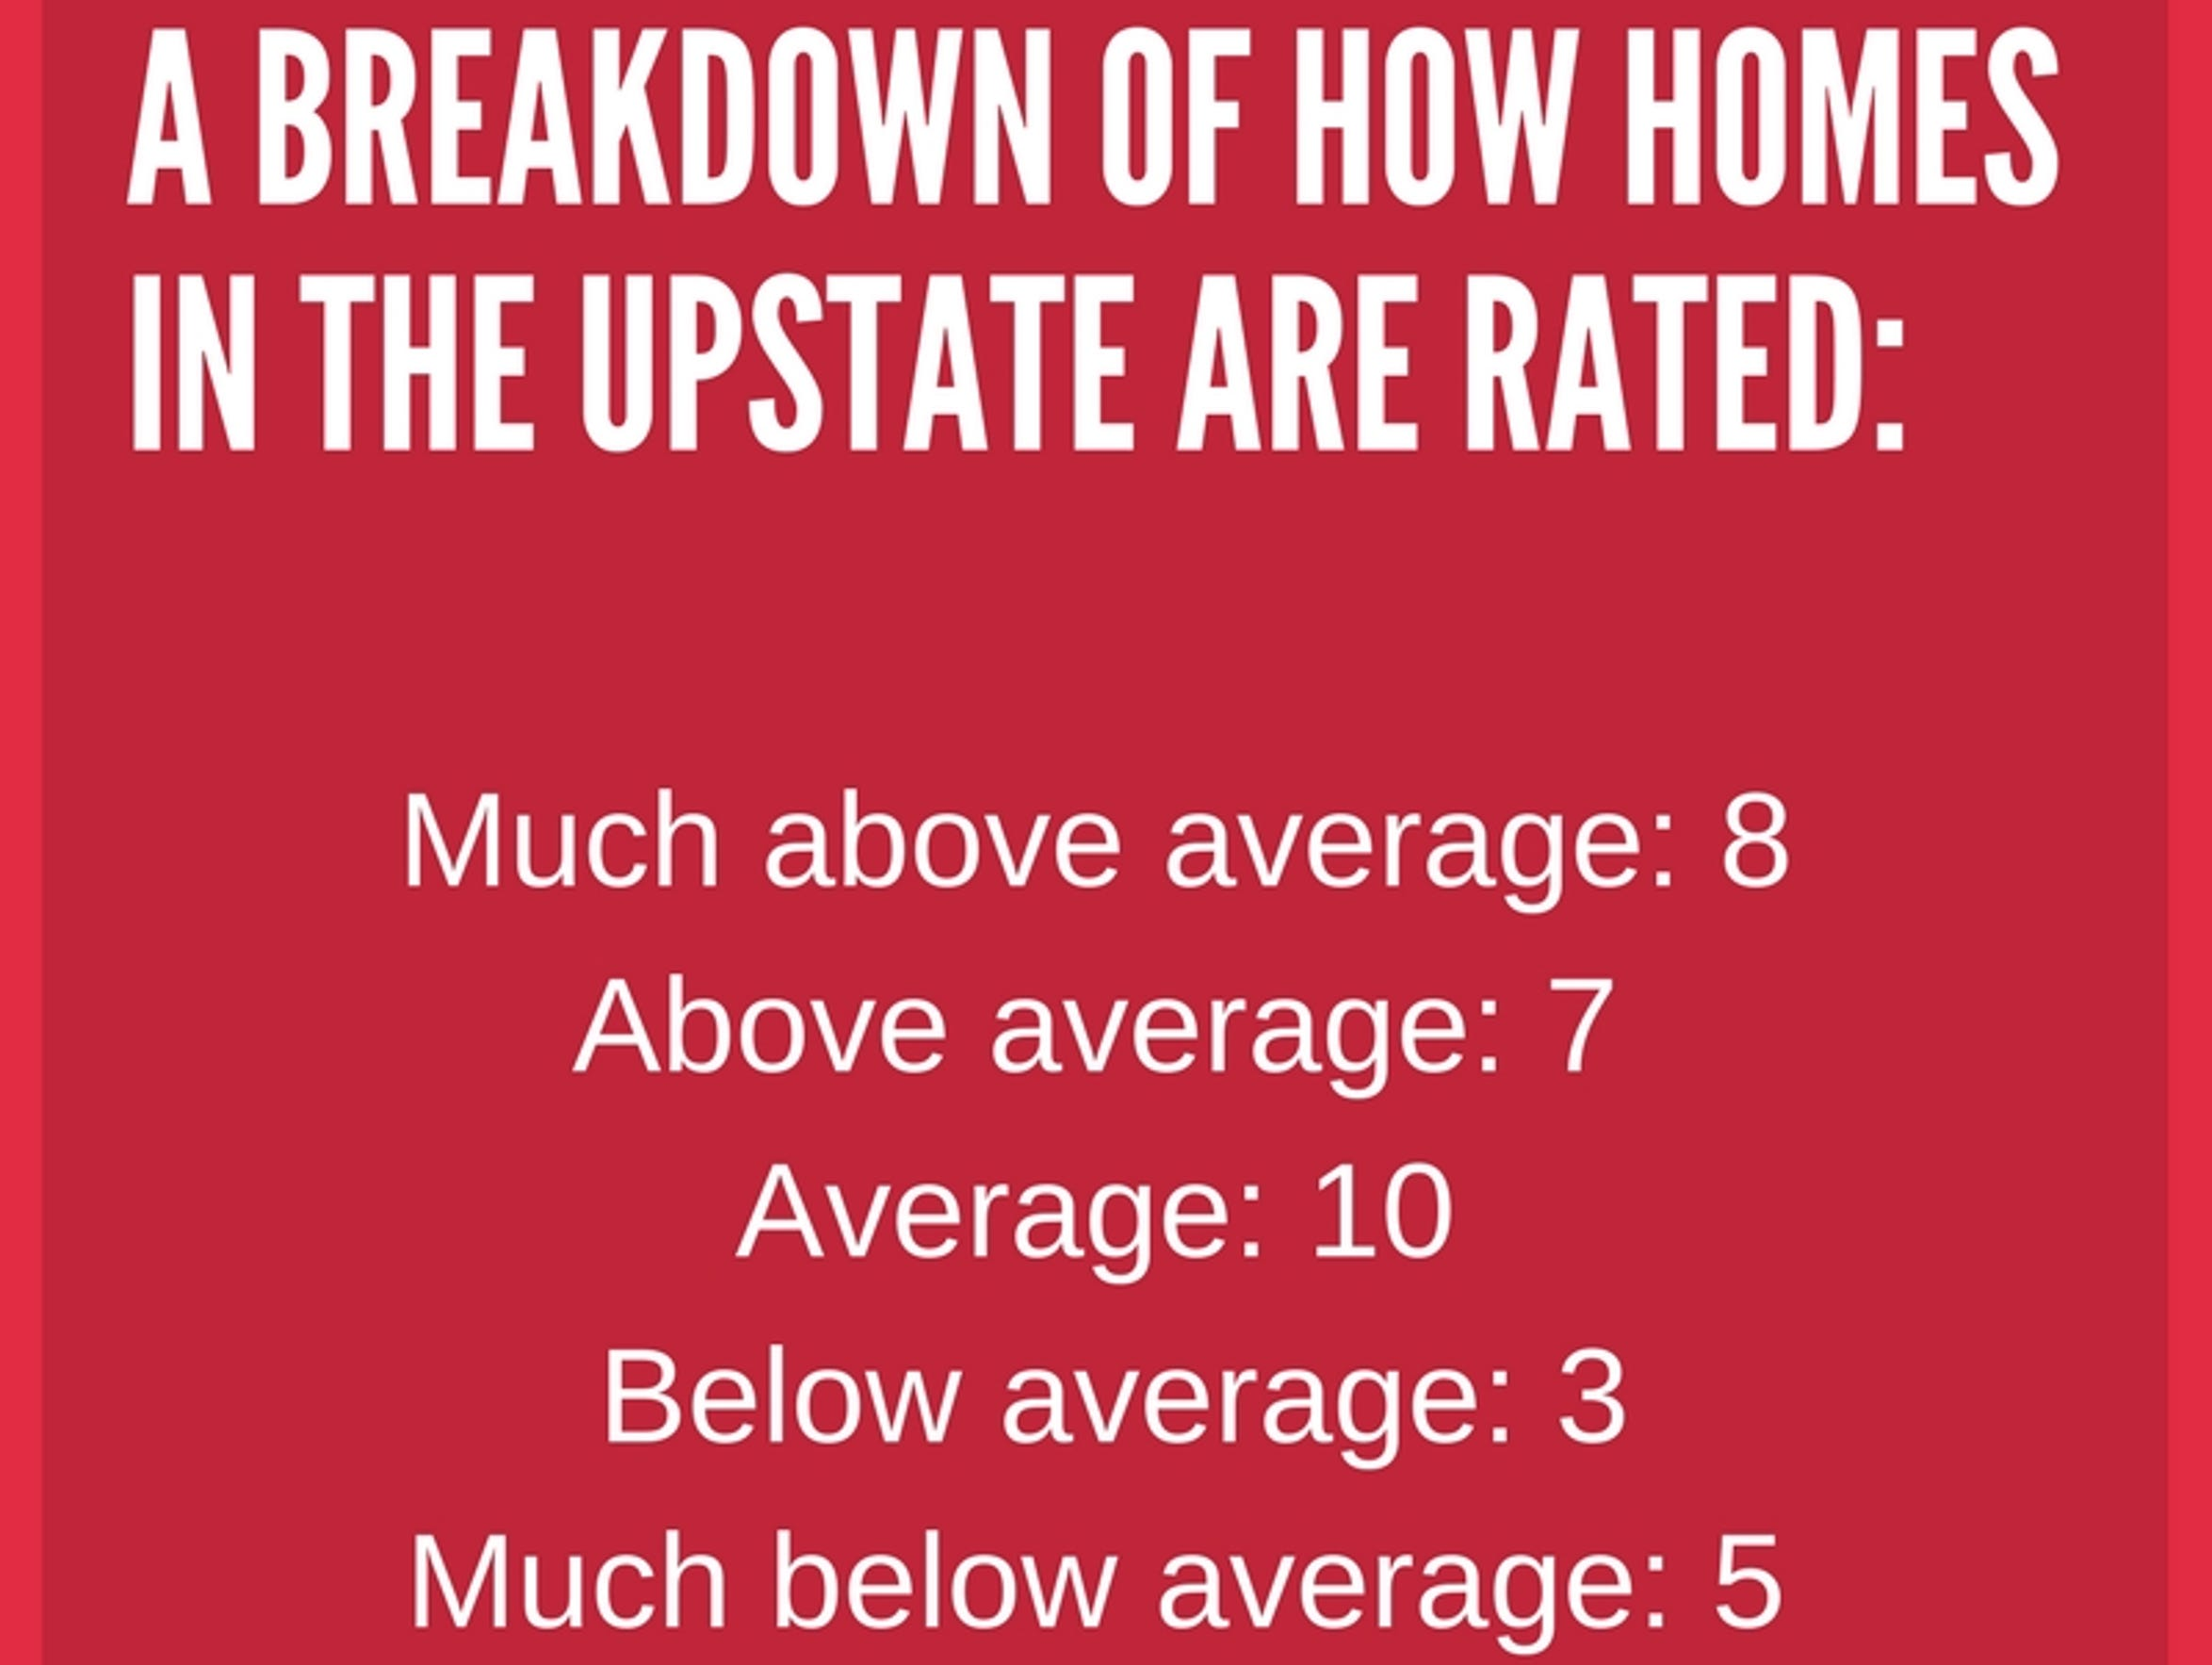 How 33 homes in the Upstate are rated.